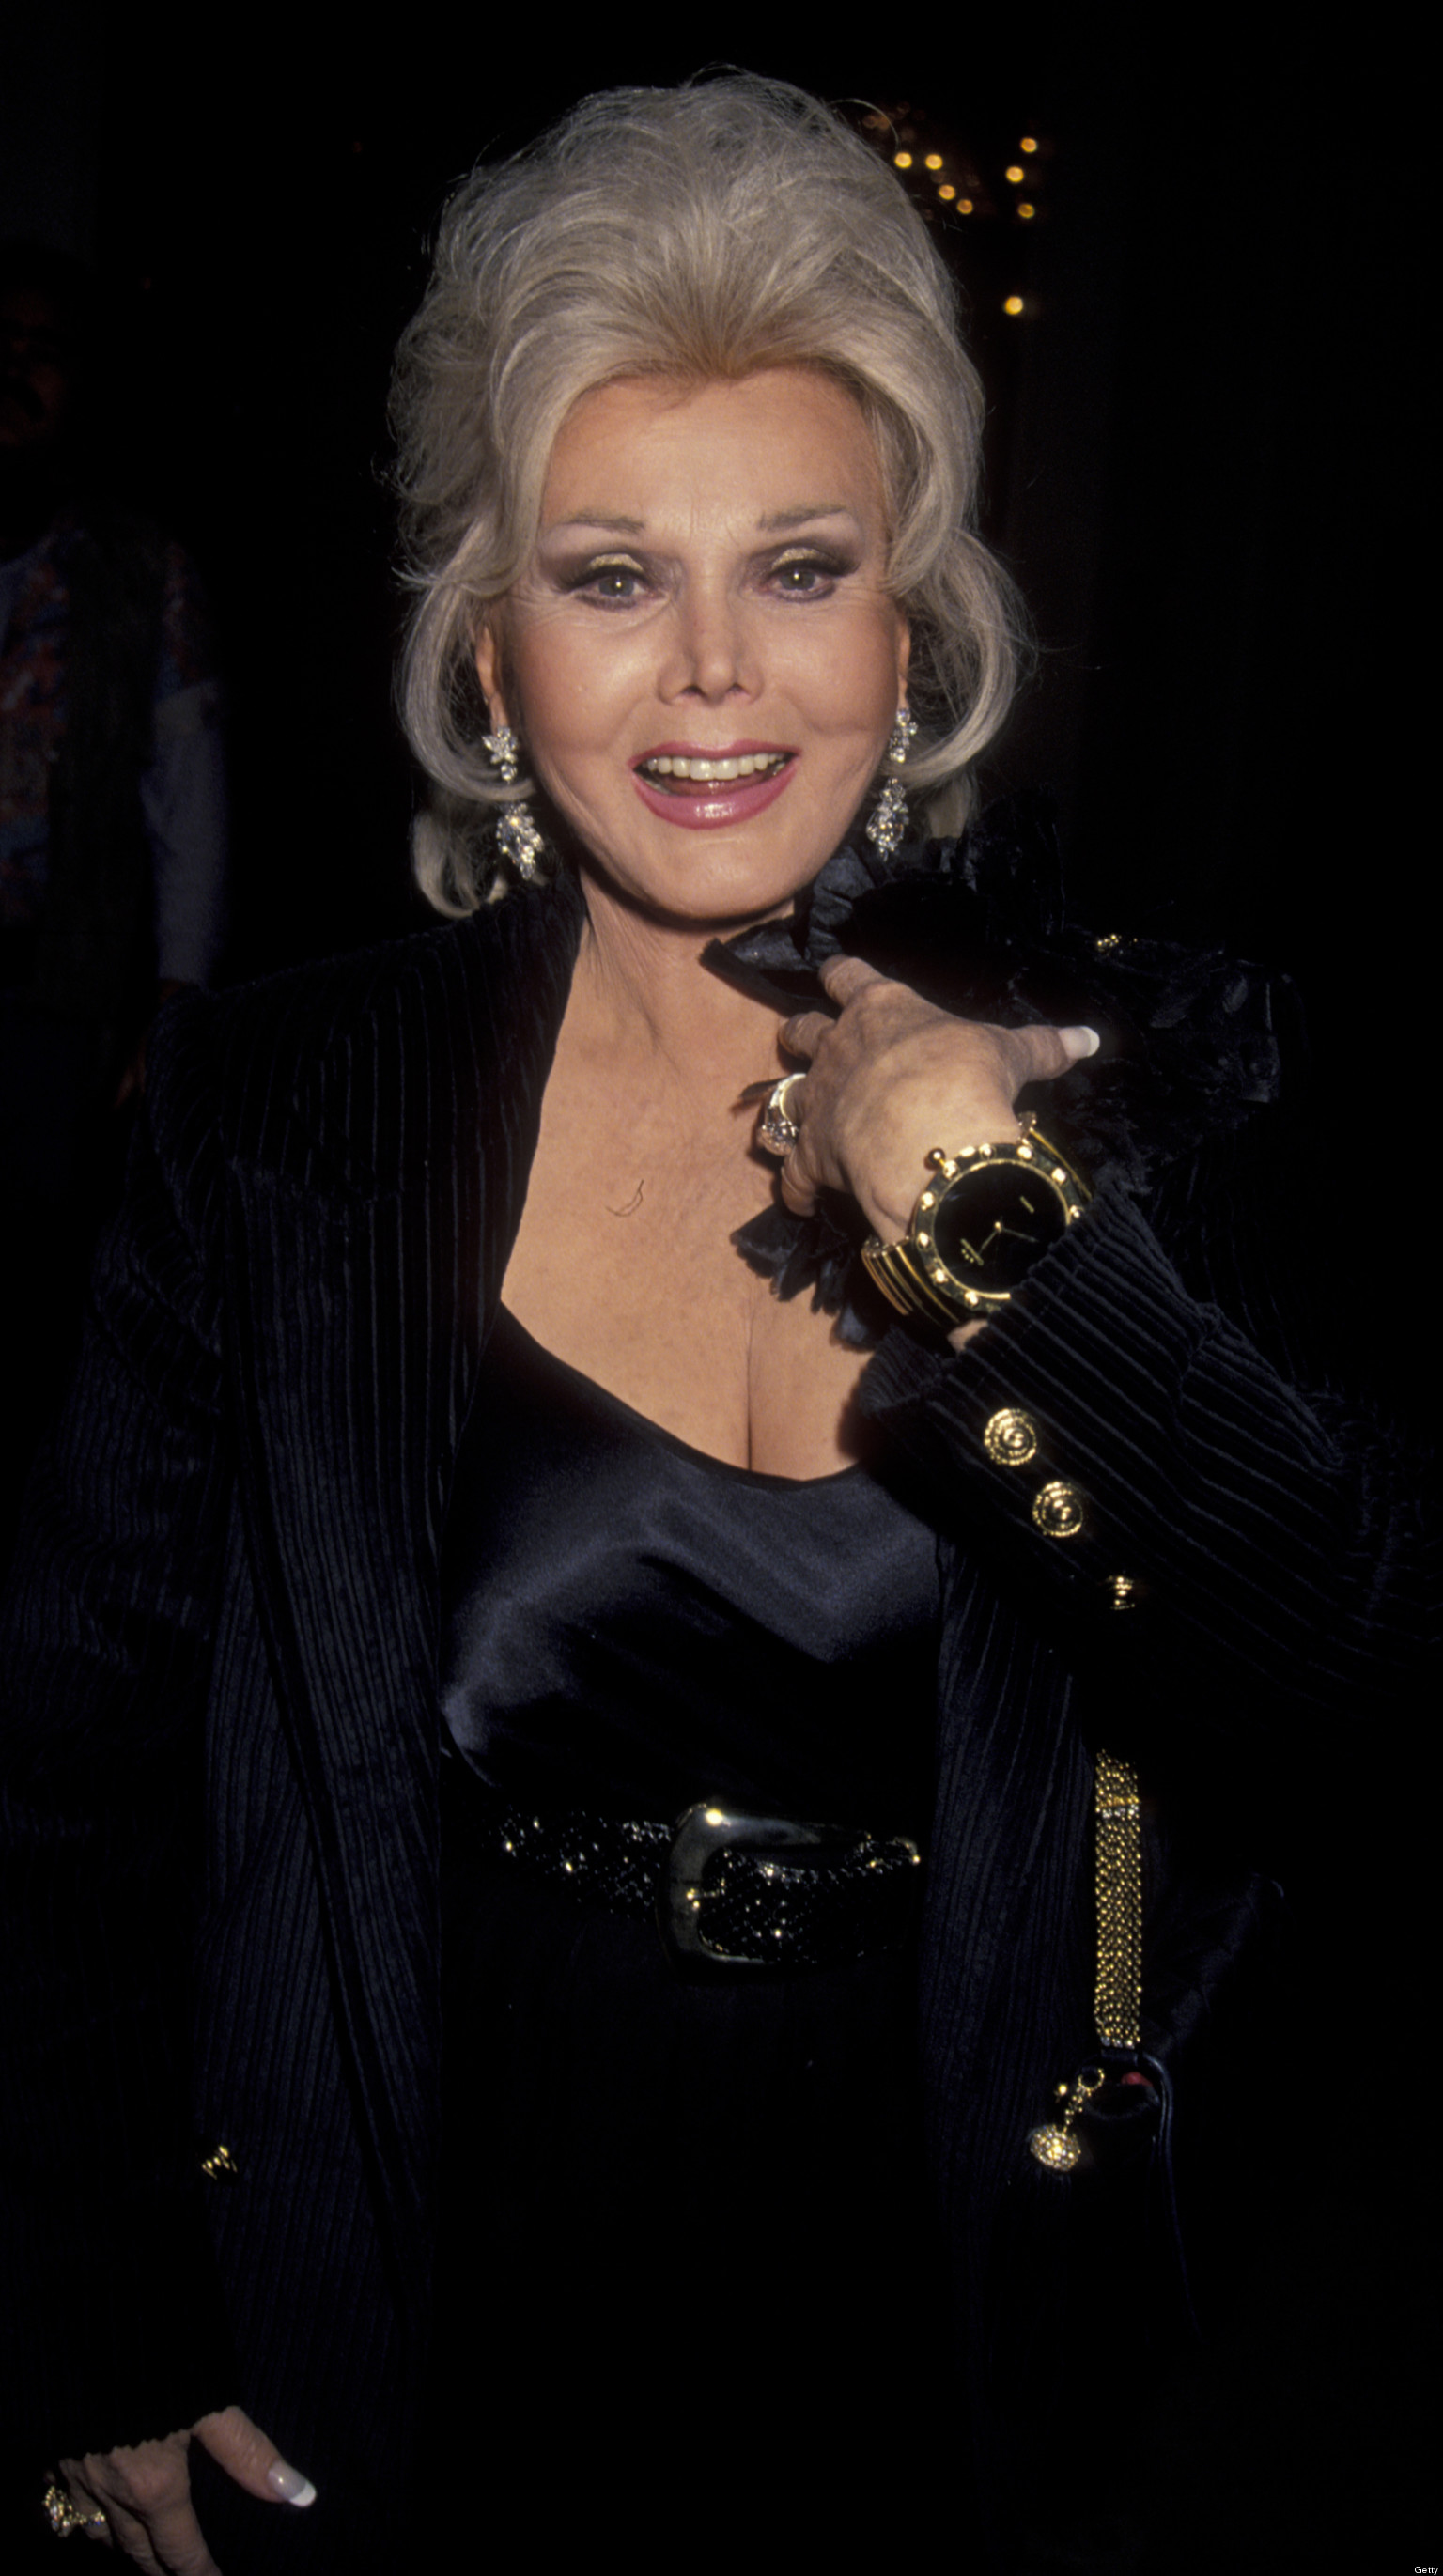 zsa zsa gabor ve ataturkzsa zsa gabor quotes, zsa zsa gabor funeral, zsa zsa gabor net worth, zsa zsa gabor 2014, zsa zsa gabor larry king, zsa zsa gabor ve ataturk, zsa zsa gabor horse ranch, zsa zsa gabor kimdir, zsa zsa gabor young, zsa zsa gabor workout video, zsa zsa gabor wiki, zsa zsa gabor imdb, zsa zsa gabor instagram, zsa zsa gabor pronunciation, zsa zsa gabor birthday, zsa zsa gabor son, zsa zsa gabor 2016, zsa zsa gabor book how to keep a man, zsa zsa gabor daughter, zsa zsa gabor cat dance